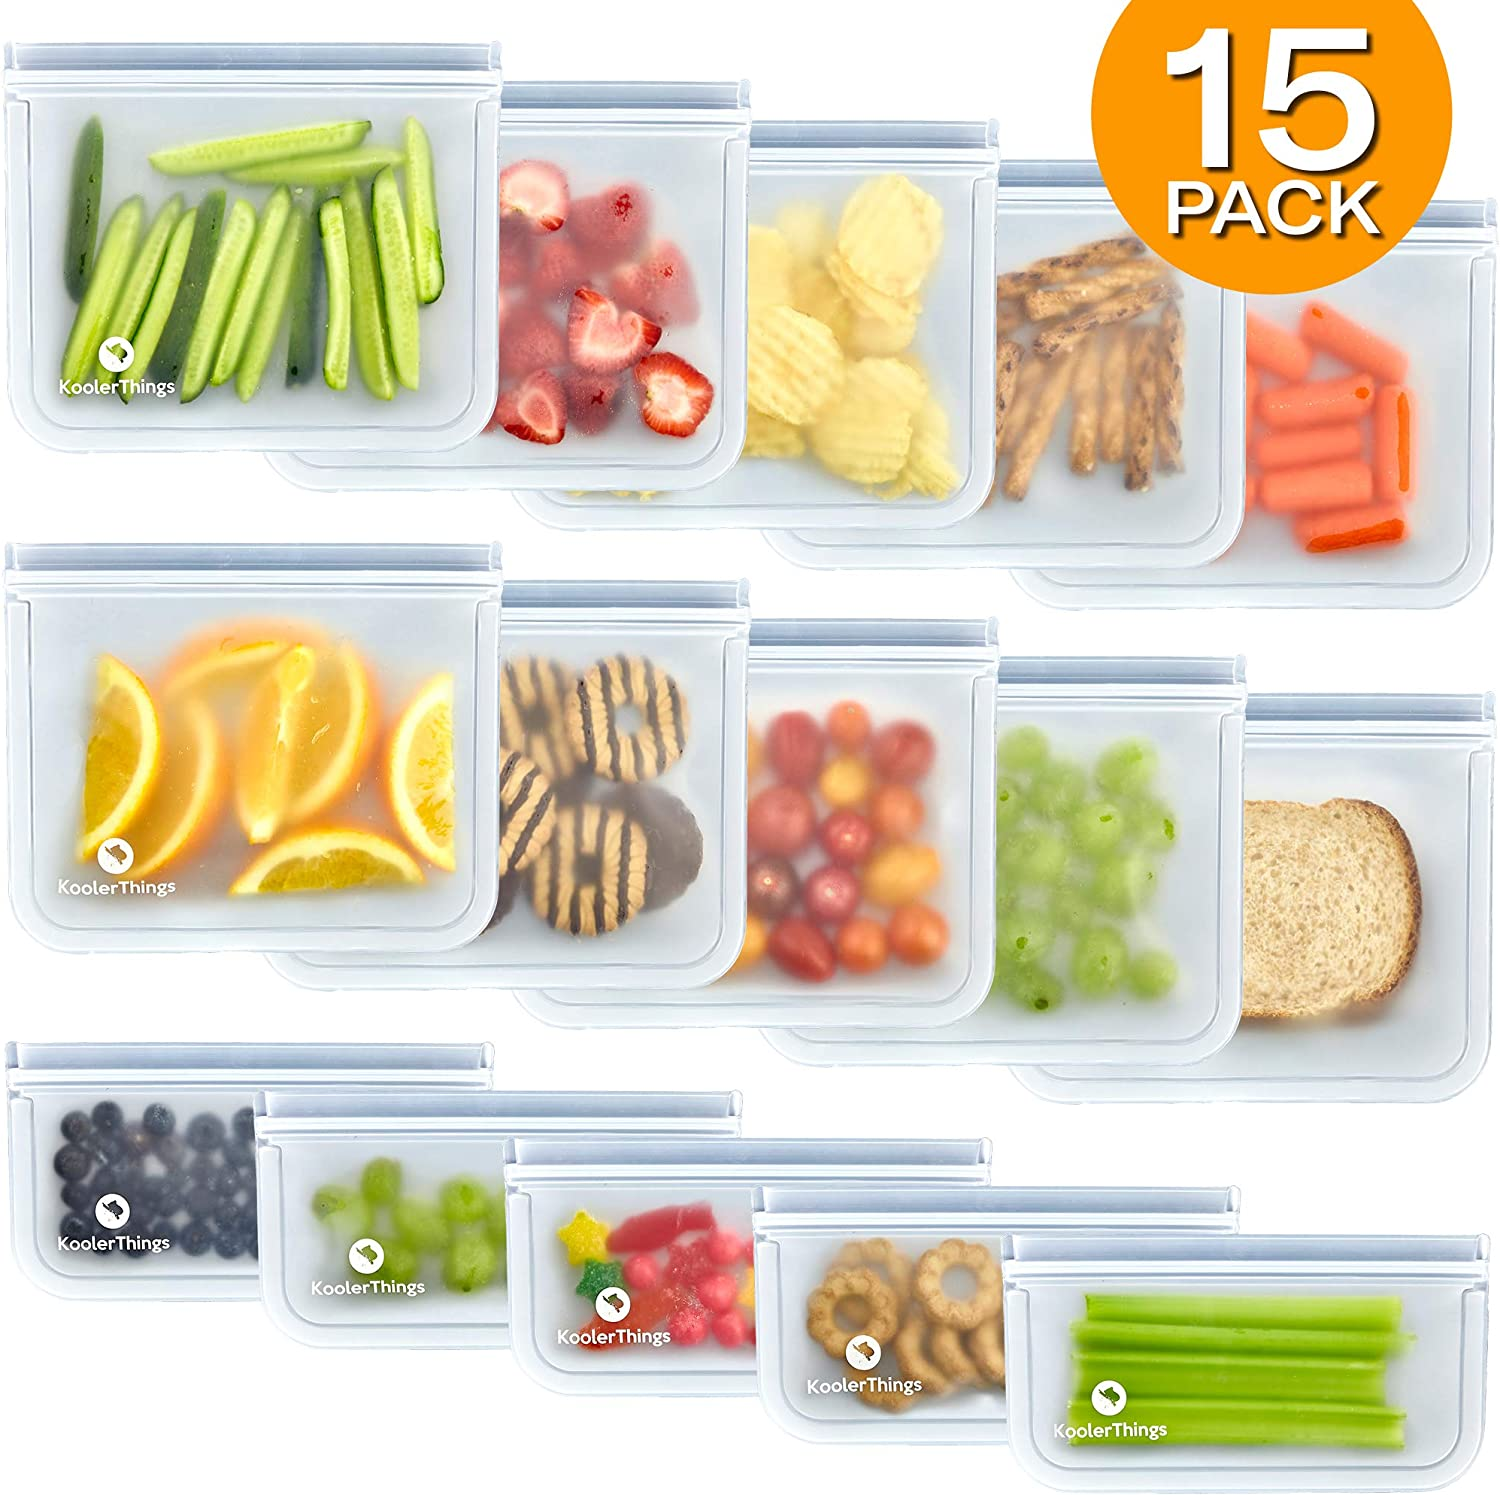 15 Pack FDA Grade Reusable Storage Bags (10 Sandwich & 5 Snack Bags), Leakproof Slicone & Plastic Free Lunch Bags, Food Grade PEVA Sandwich Bags and Snack Bags